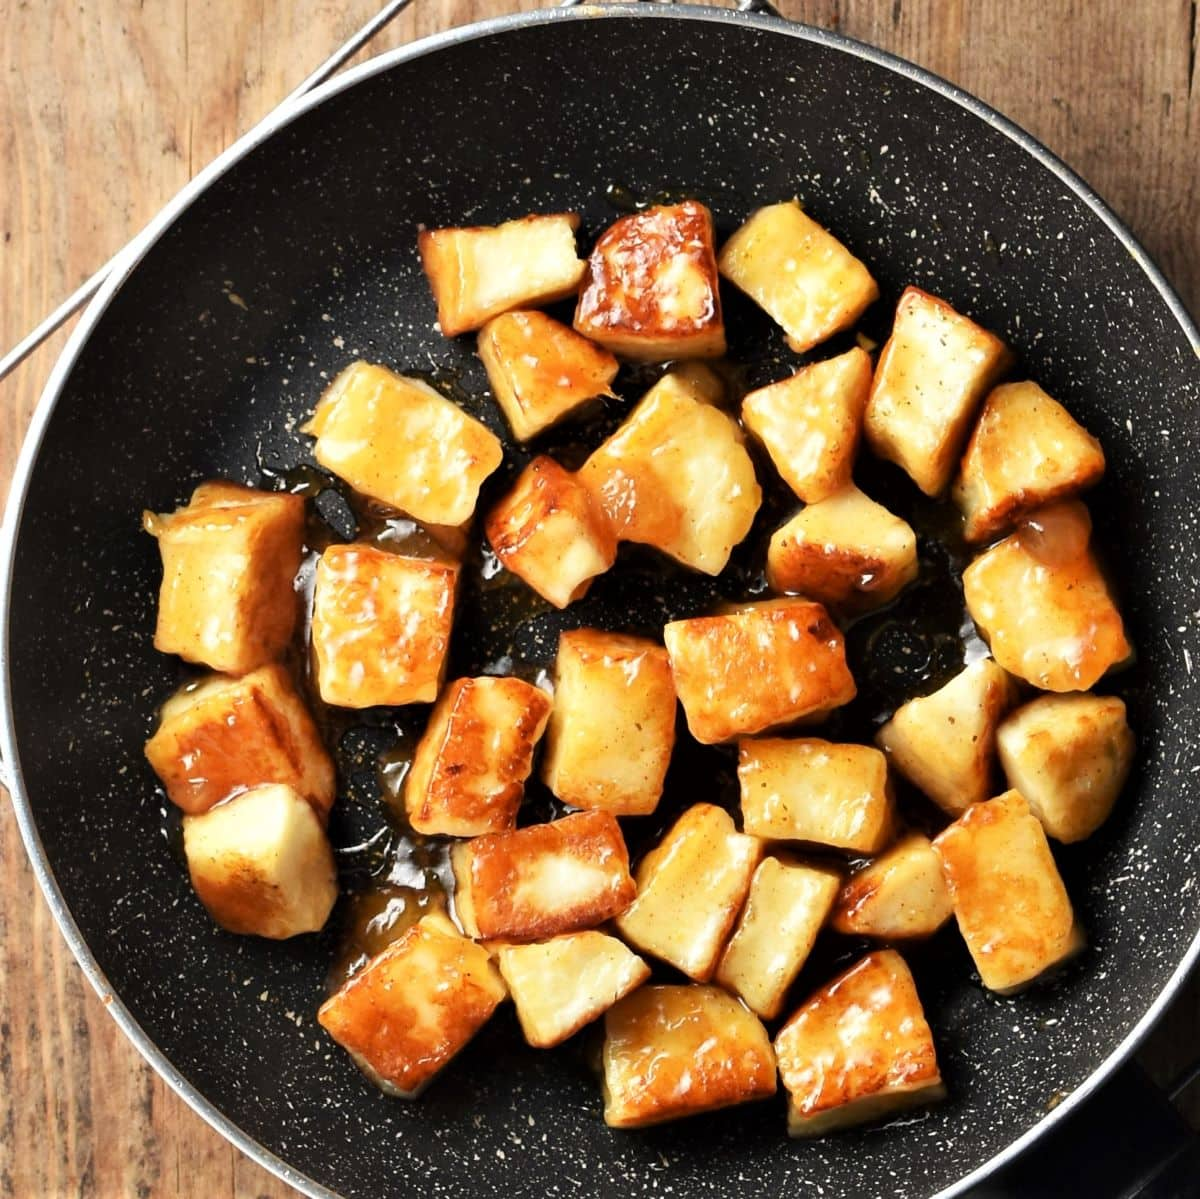 Cubed fried halloumi coated in chutney in pan.